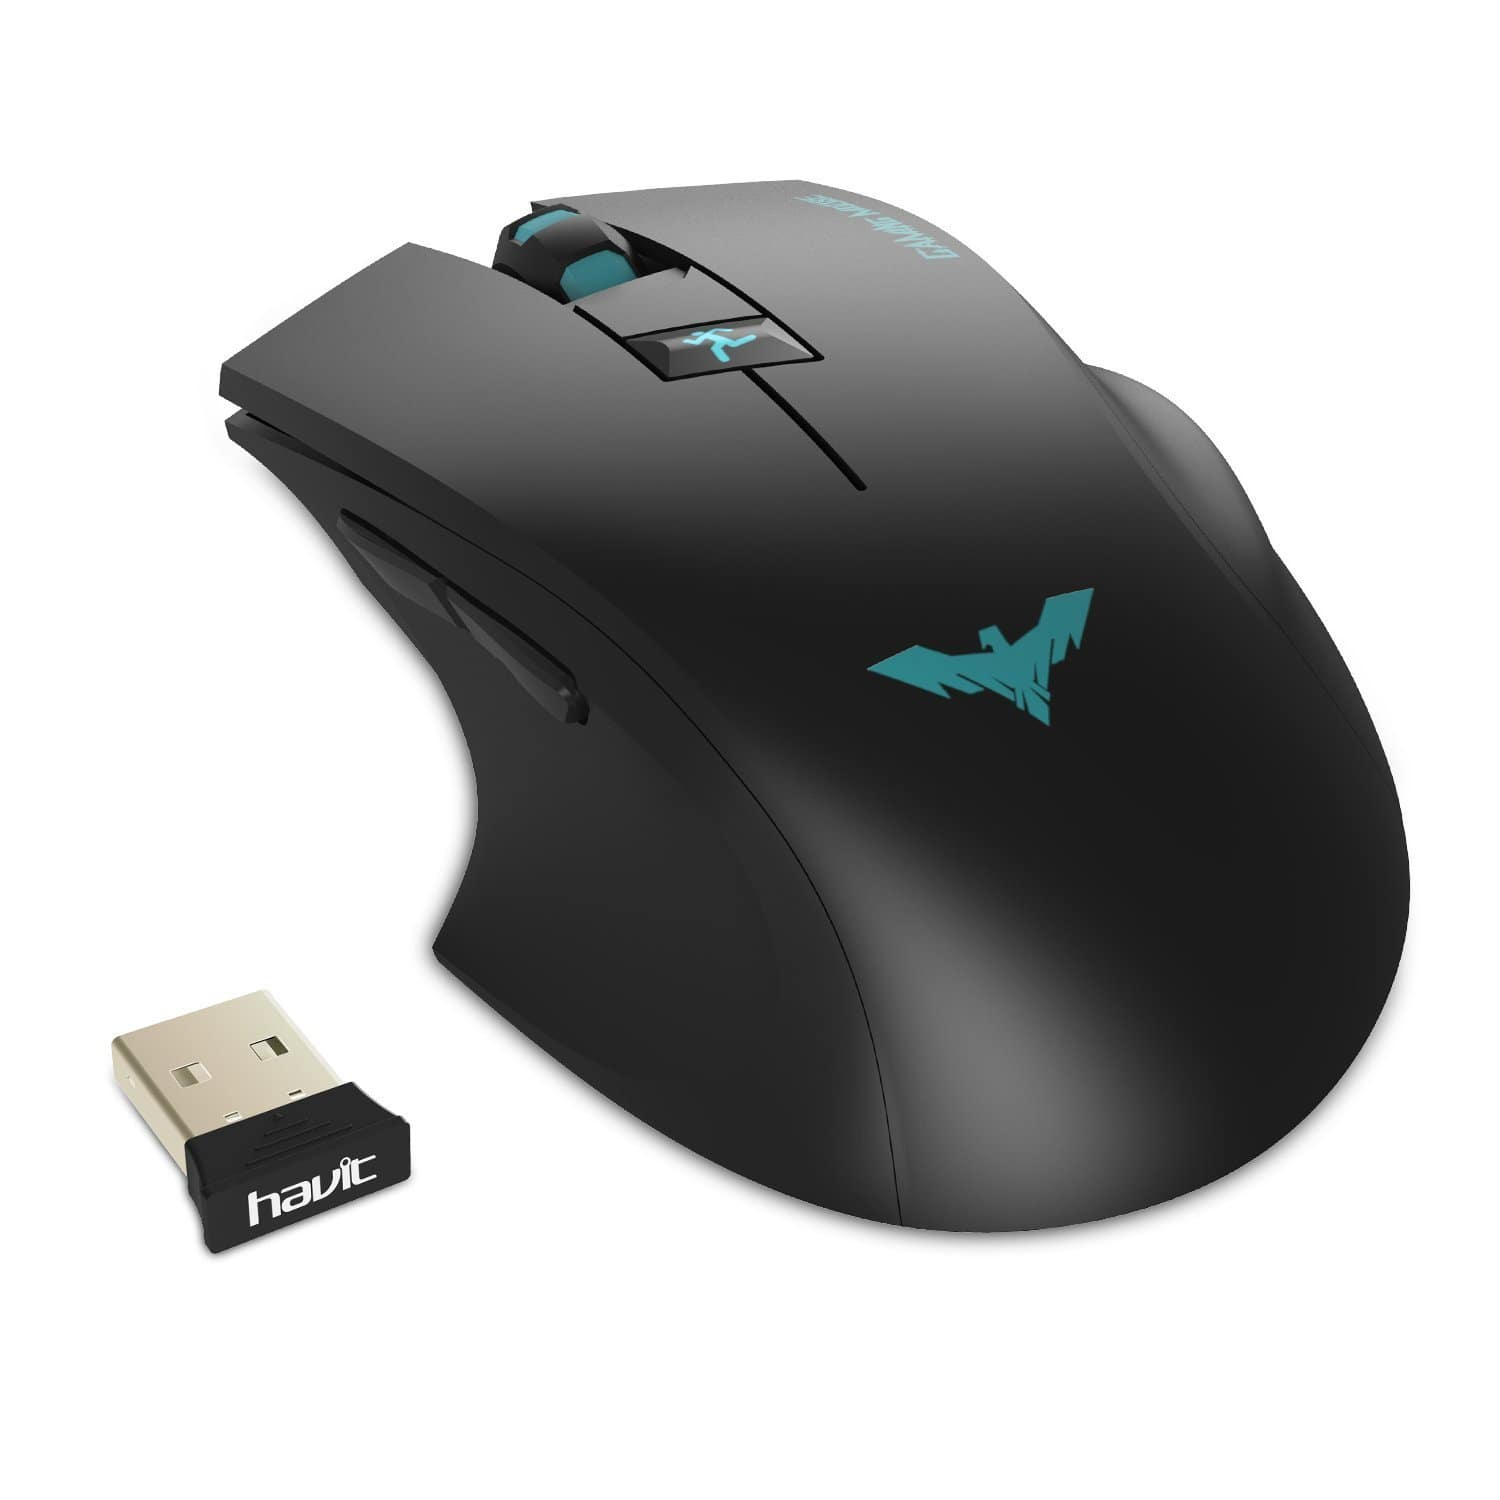 HAVIT 2.4GHz Adjustable 2000 DPI Wireless Gaming Mouse $7.99AC at Amazon